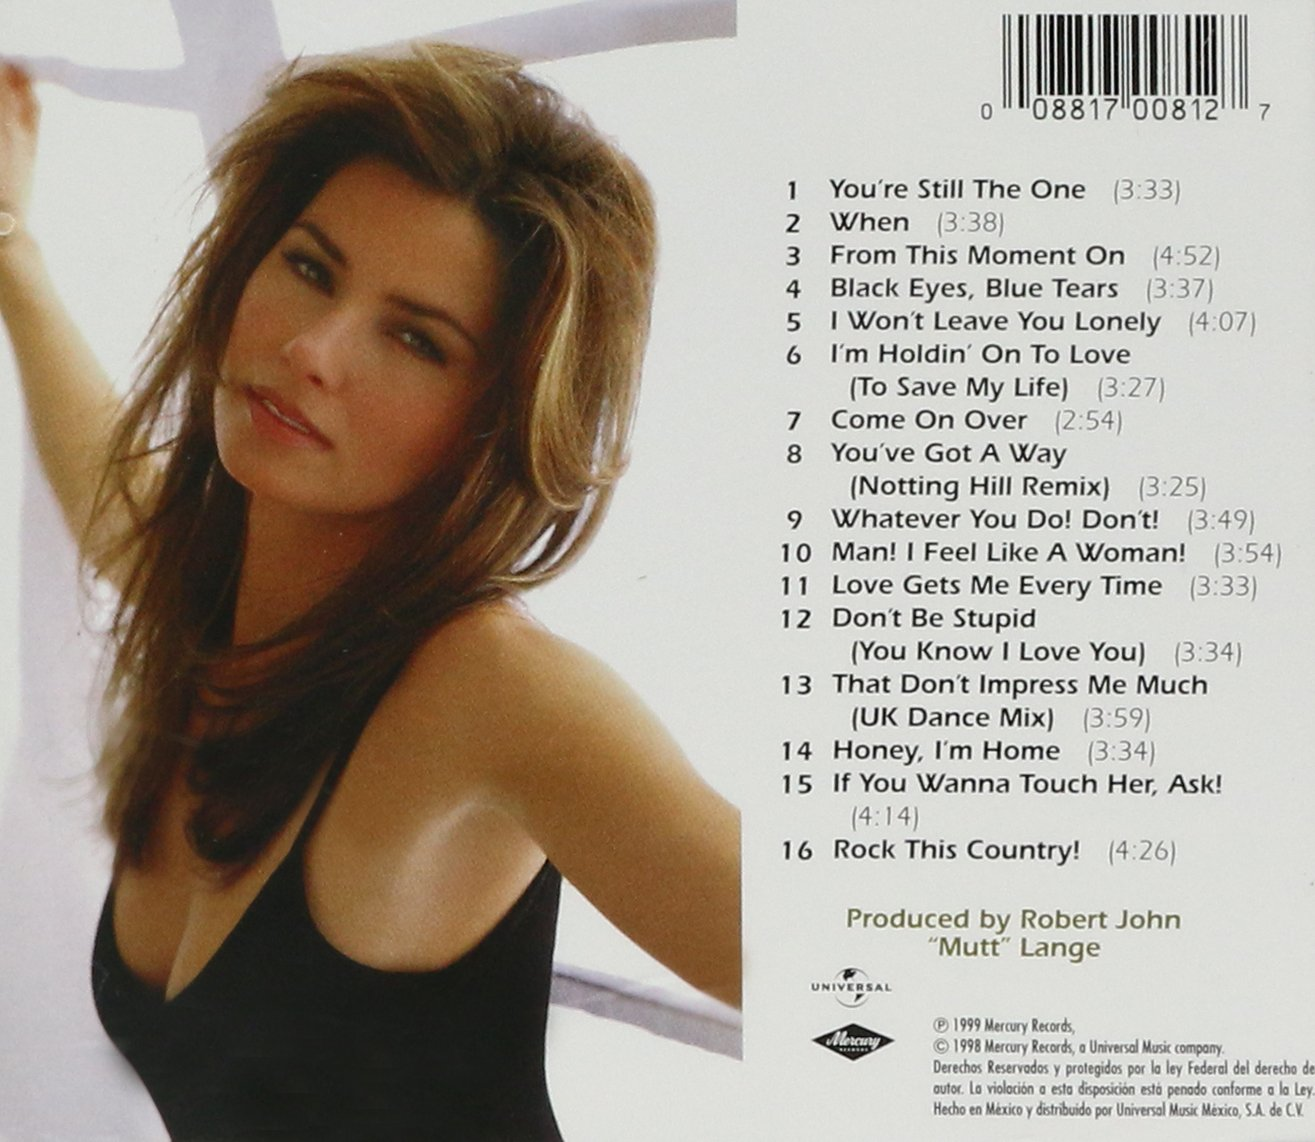 shania twain come on over album mp3 download